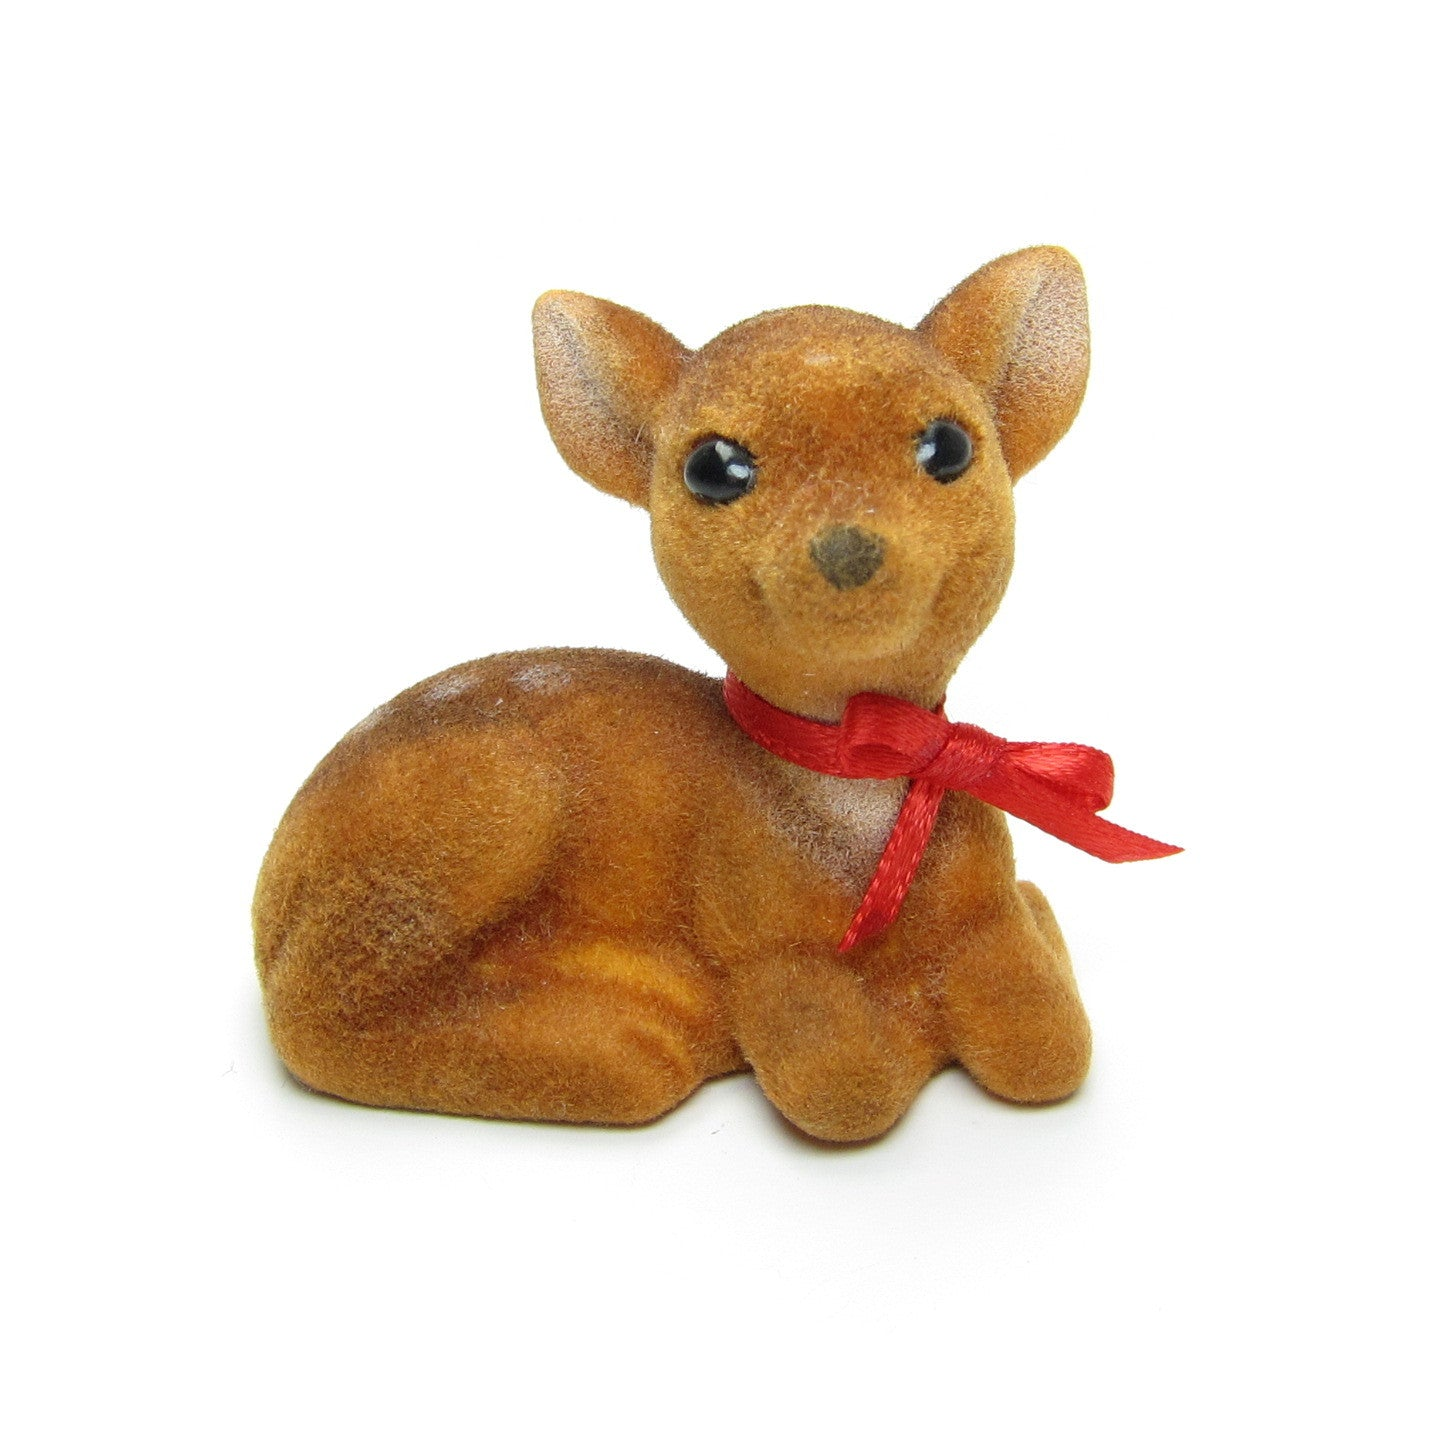 Hallmark Merry Miniatures flocked fawn or deer figurine